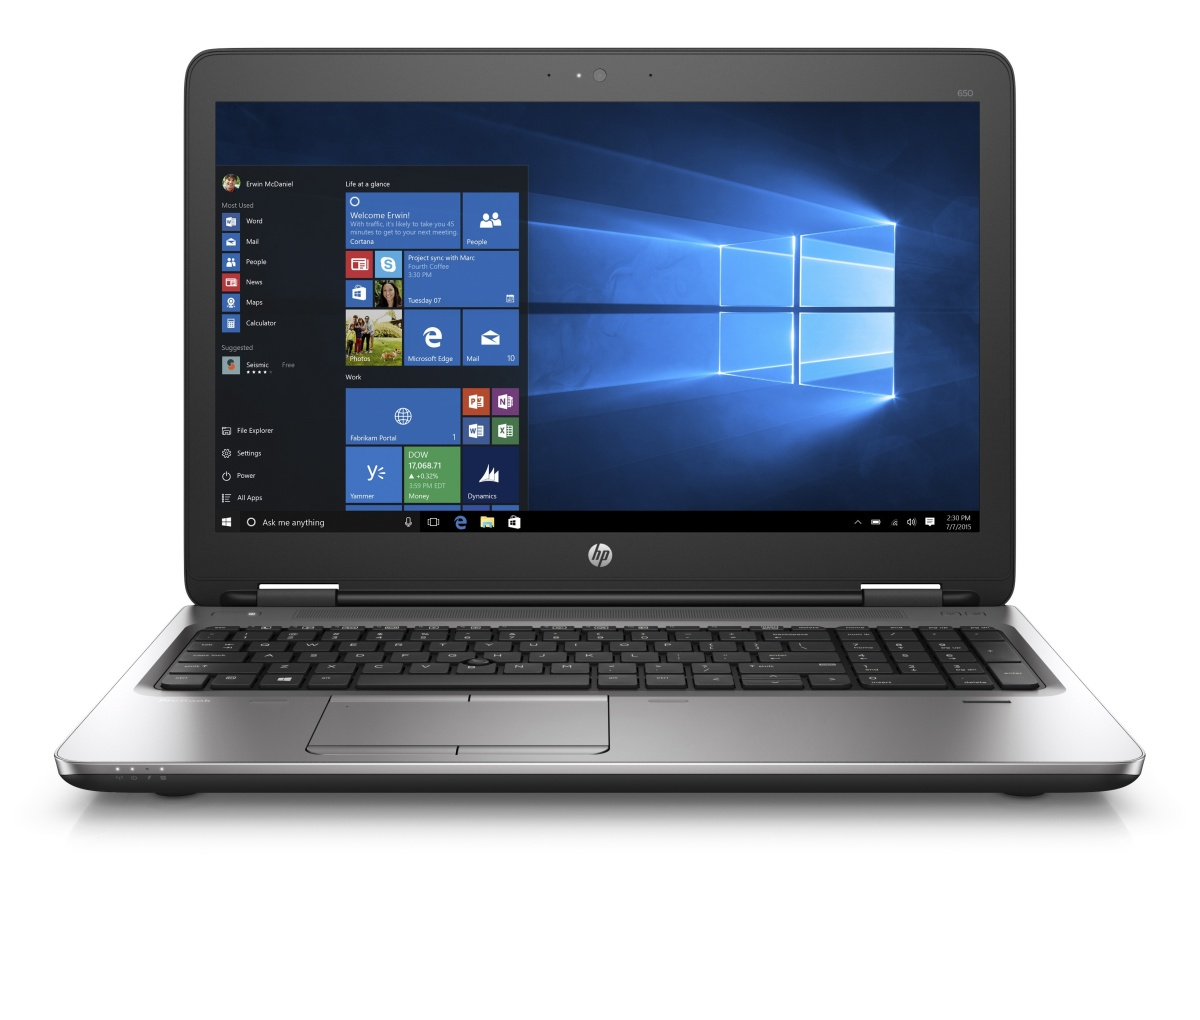 "HP ProBook 650 G2 15.6"" HD/i5-6200U/4GB/500GB/DVD/VGA/DP/SP/RJ45/WIFI/"